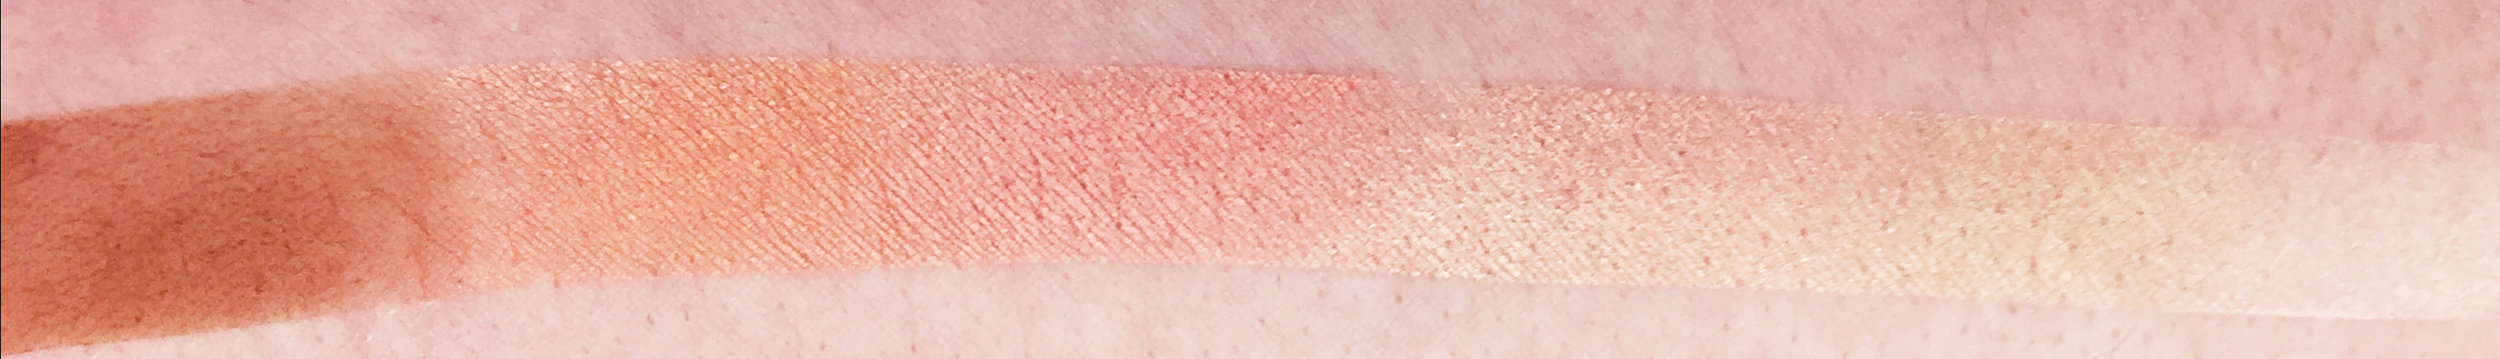 Marisa Robinson Beauty Peach Palettes BYS Peach Palette Swatches